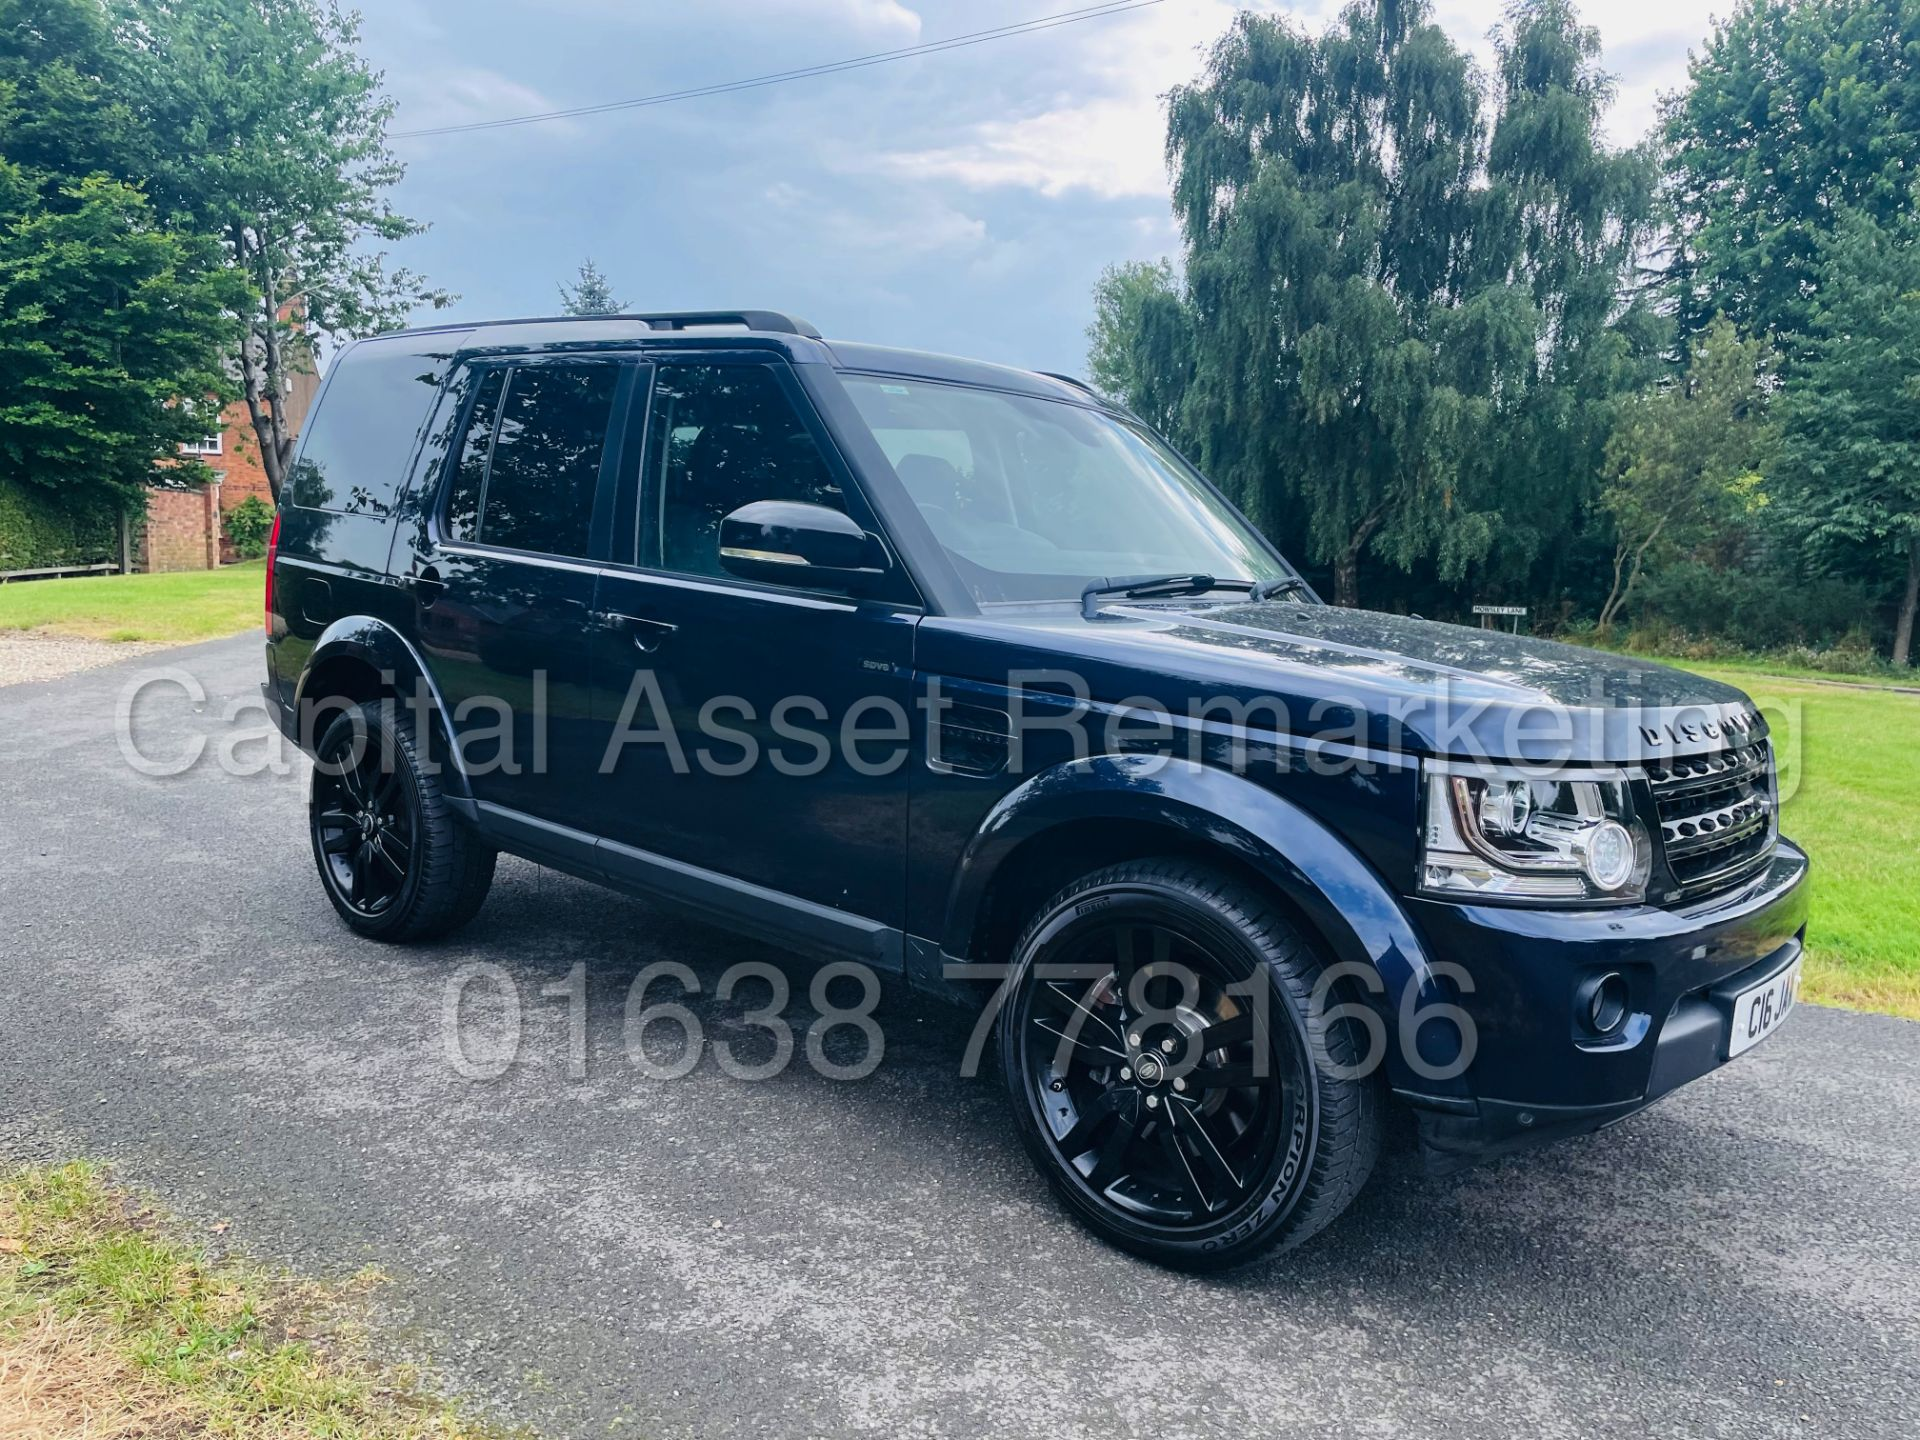 LAND ROVER DISCOVERY 4 *HSE* 7 SEATER SUV (2014 - NEW MODEL) '3.0 SDV6 - 255 BHP - 8 SPEED AUTO' - Image 2 of 61